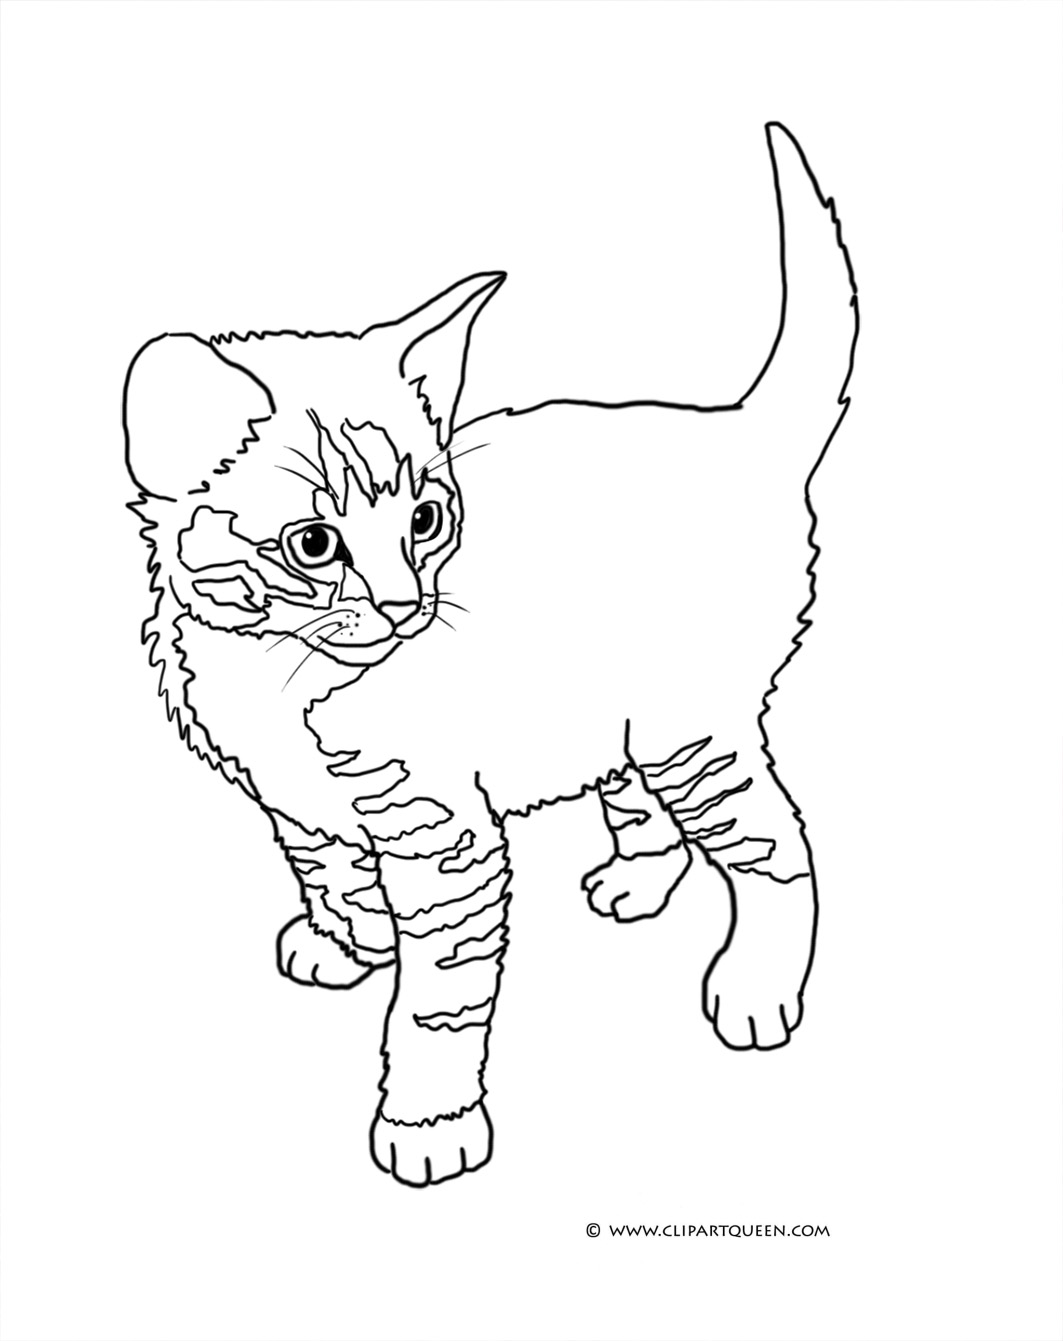 100 ideas Cute Kitty Coloring Pages on gerardduchemanncom